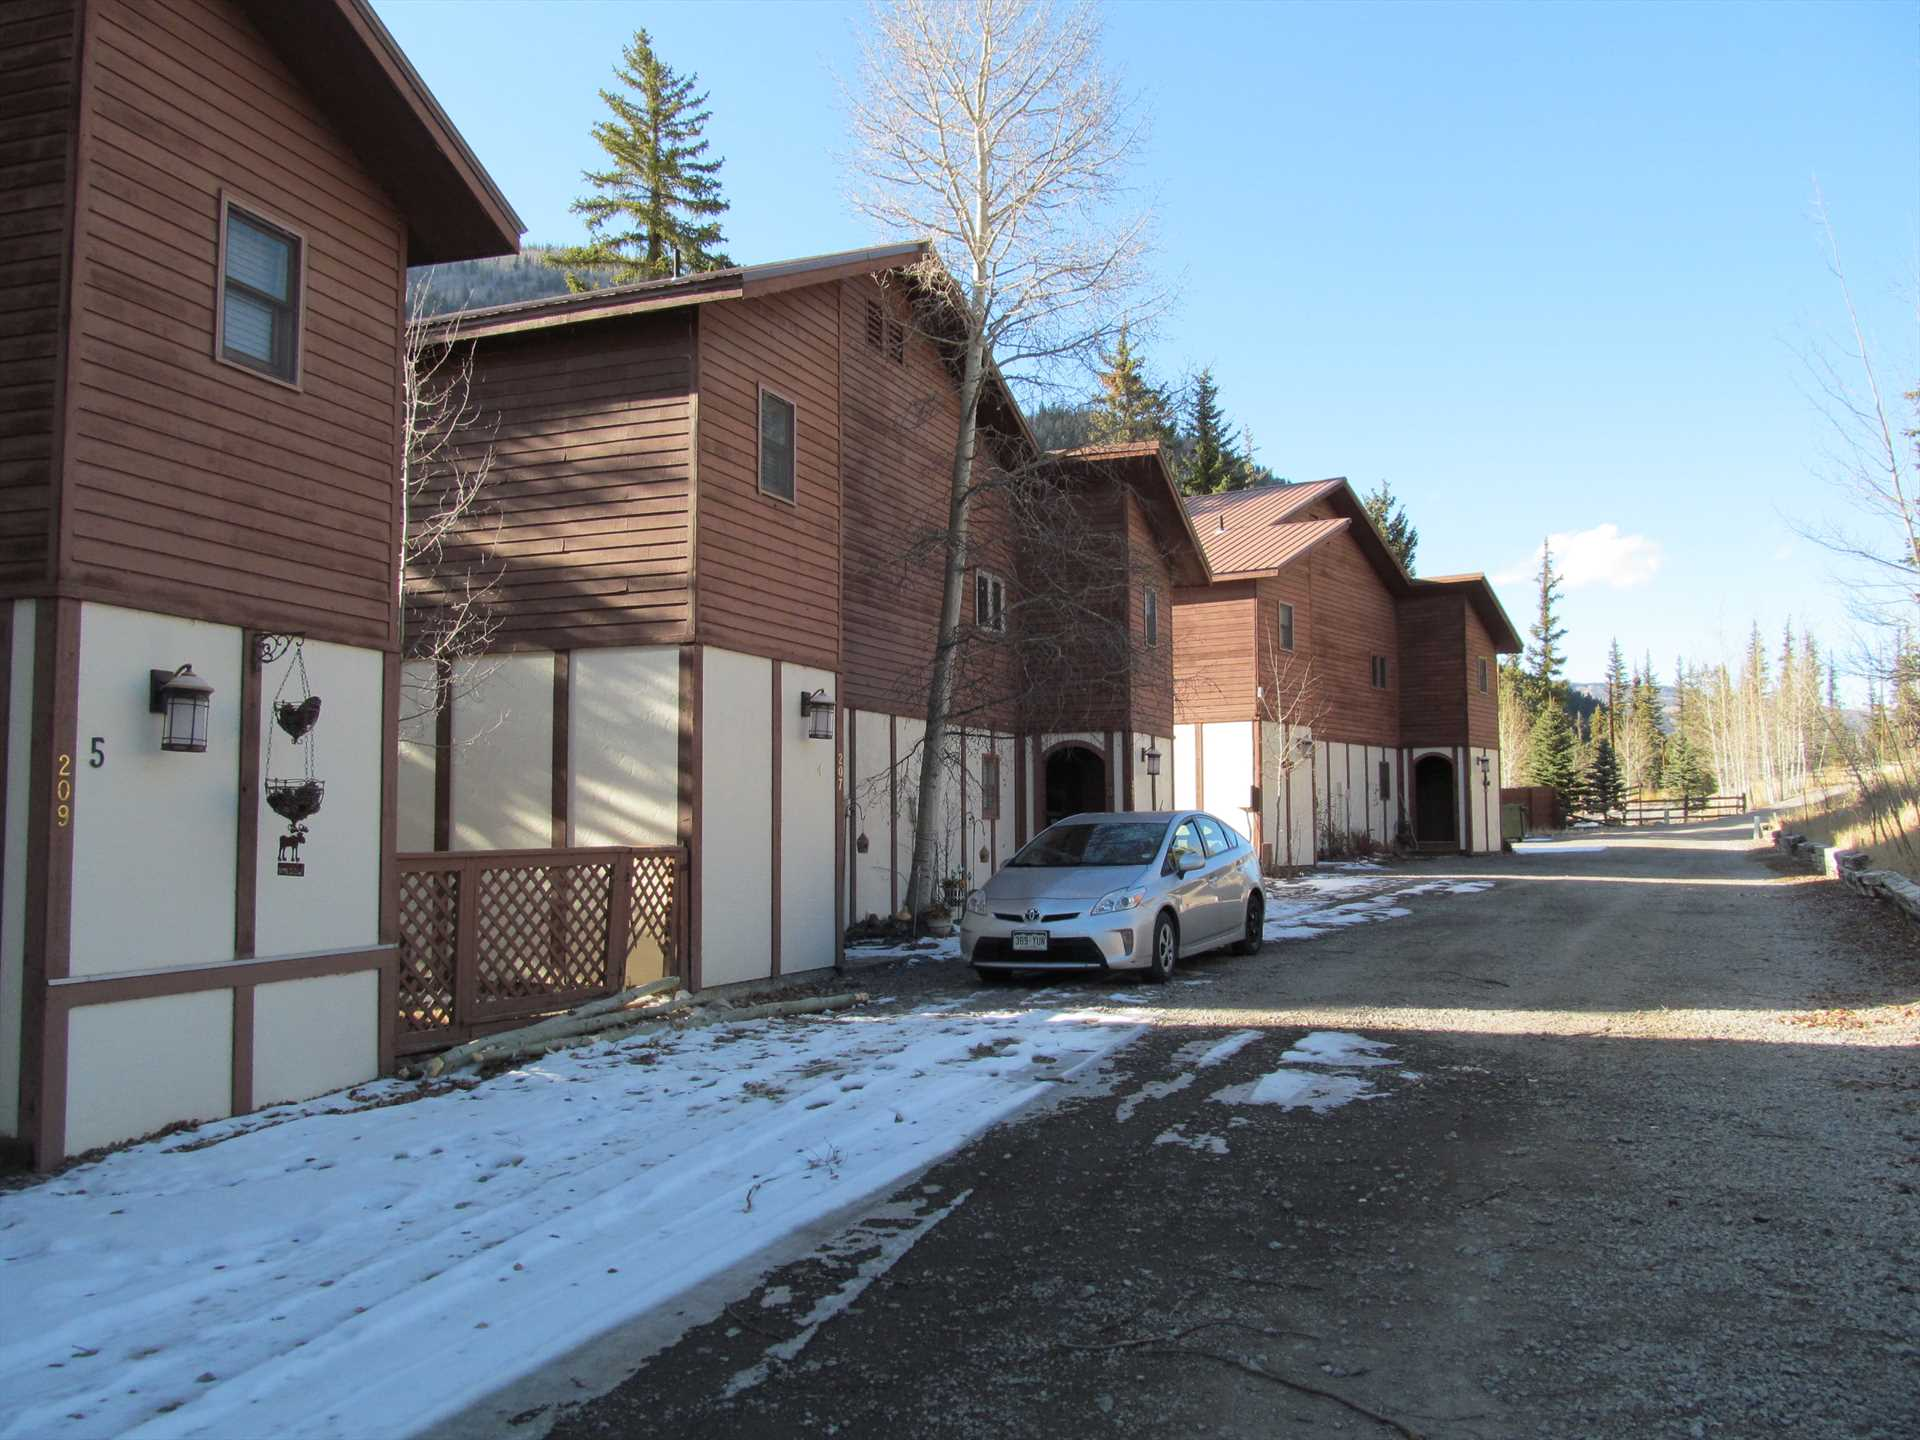 Parking for two vehicles per townhome.  There is additianal